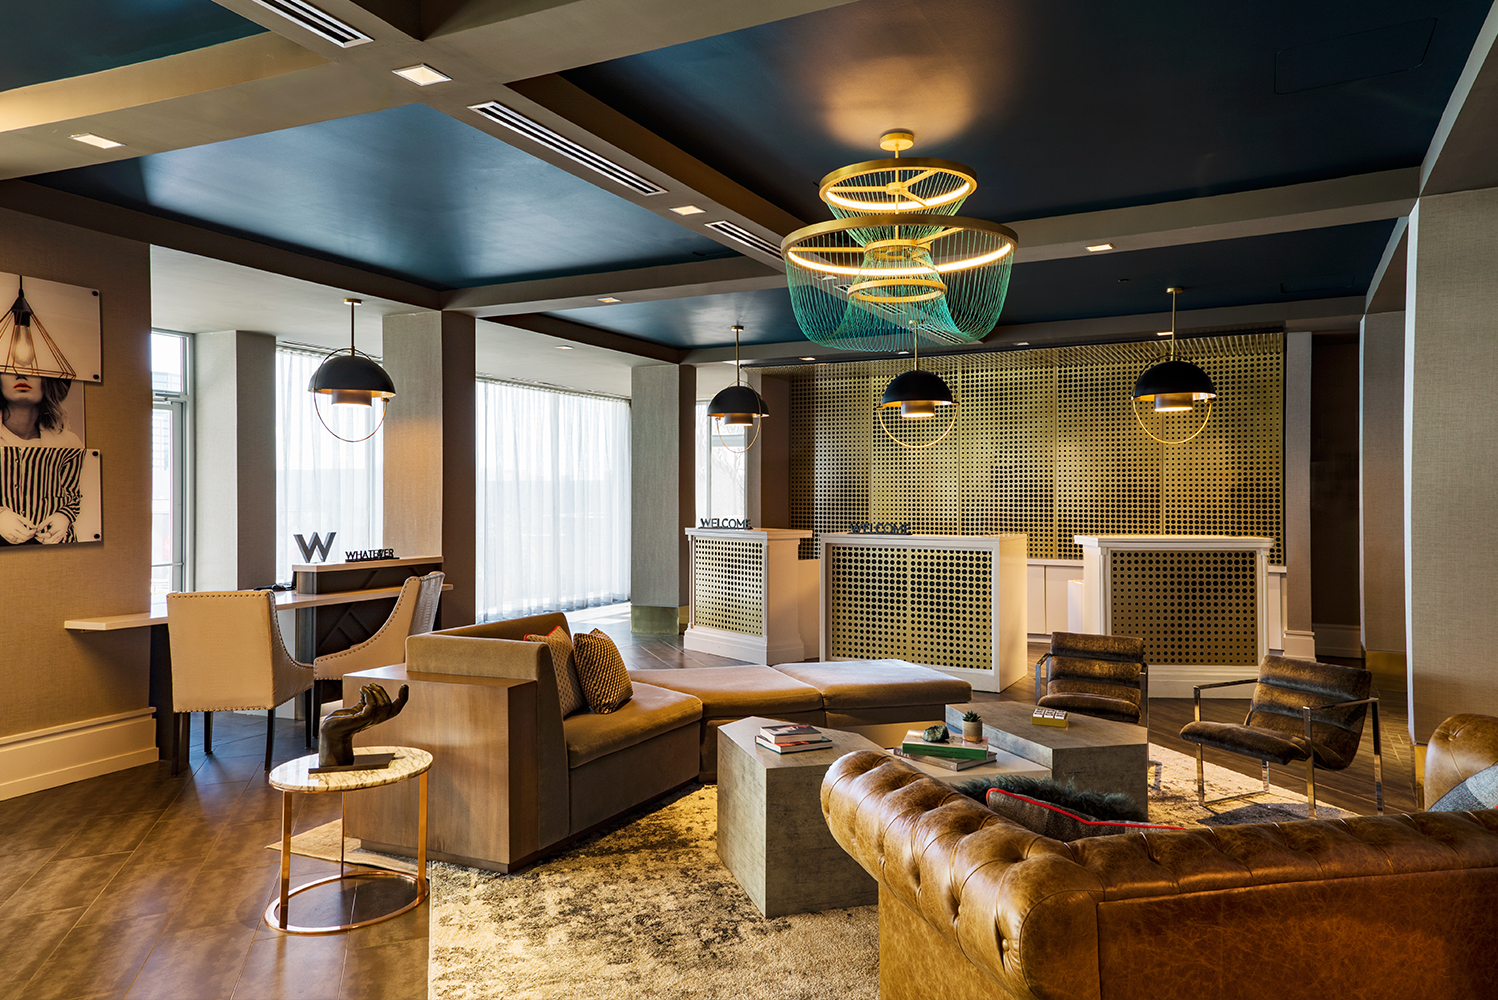 Woodbine hired C+TC Studio of Atlanta as the architect and interior designer for guestrooms and the hotel's rooftop bar, Whiskey Blue; and STUDIO 11 of Dallas as the interior designer for the lobby, public areas and meeting space.